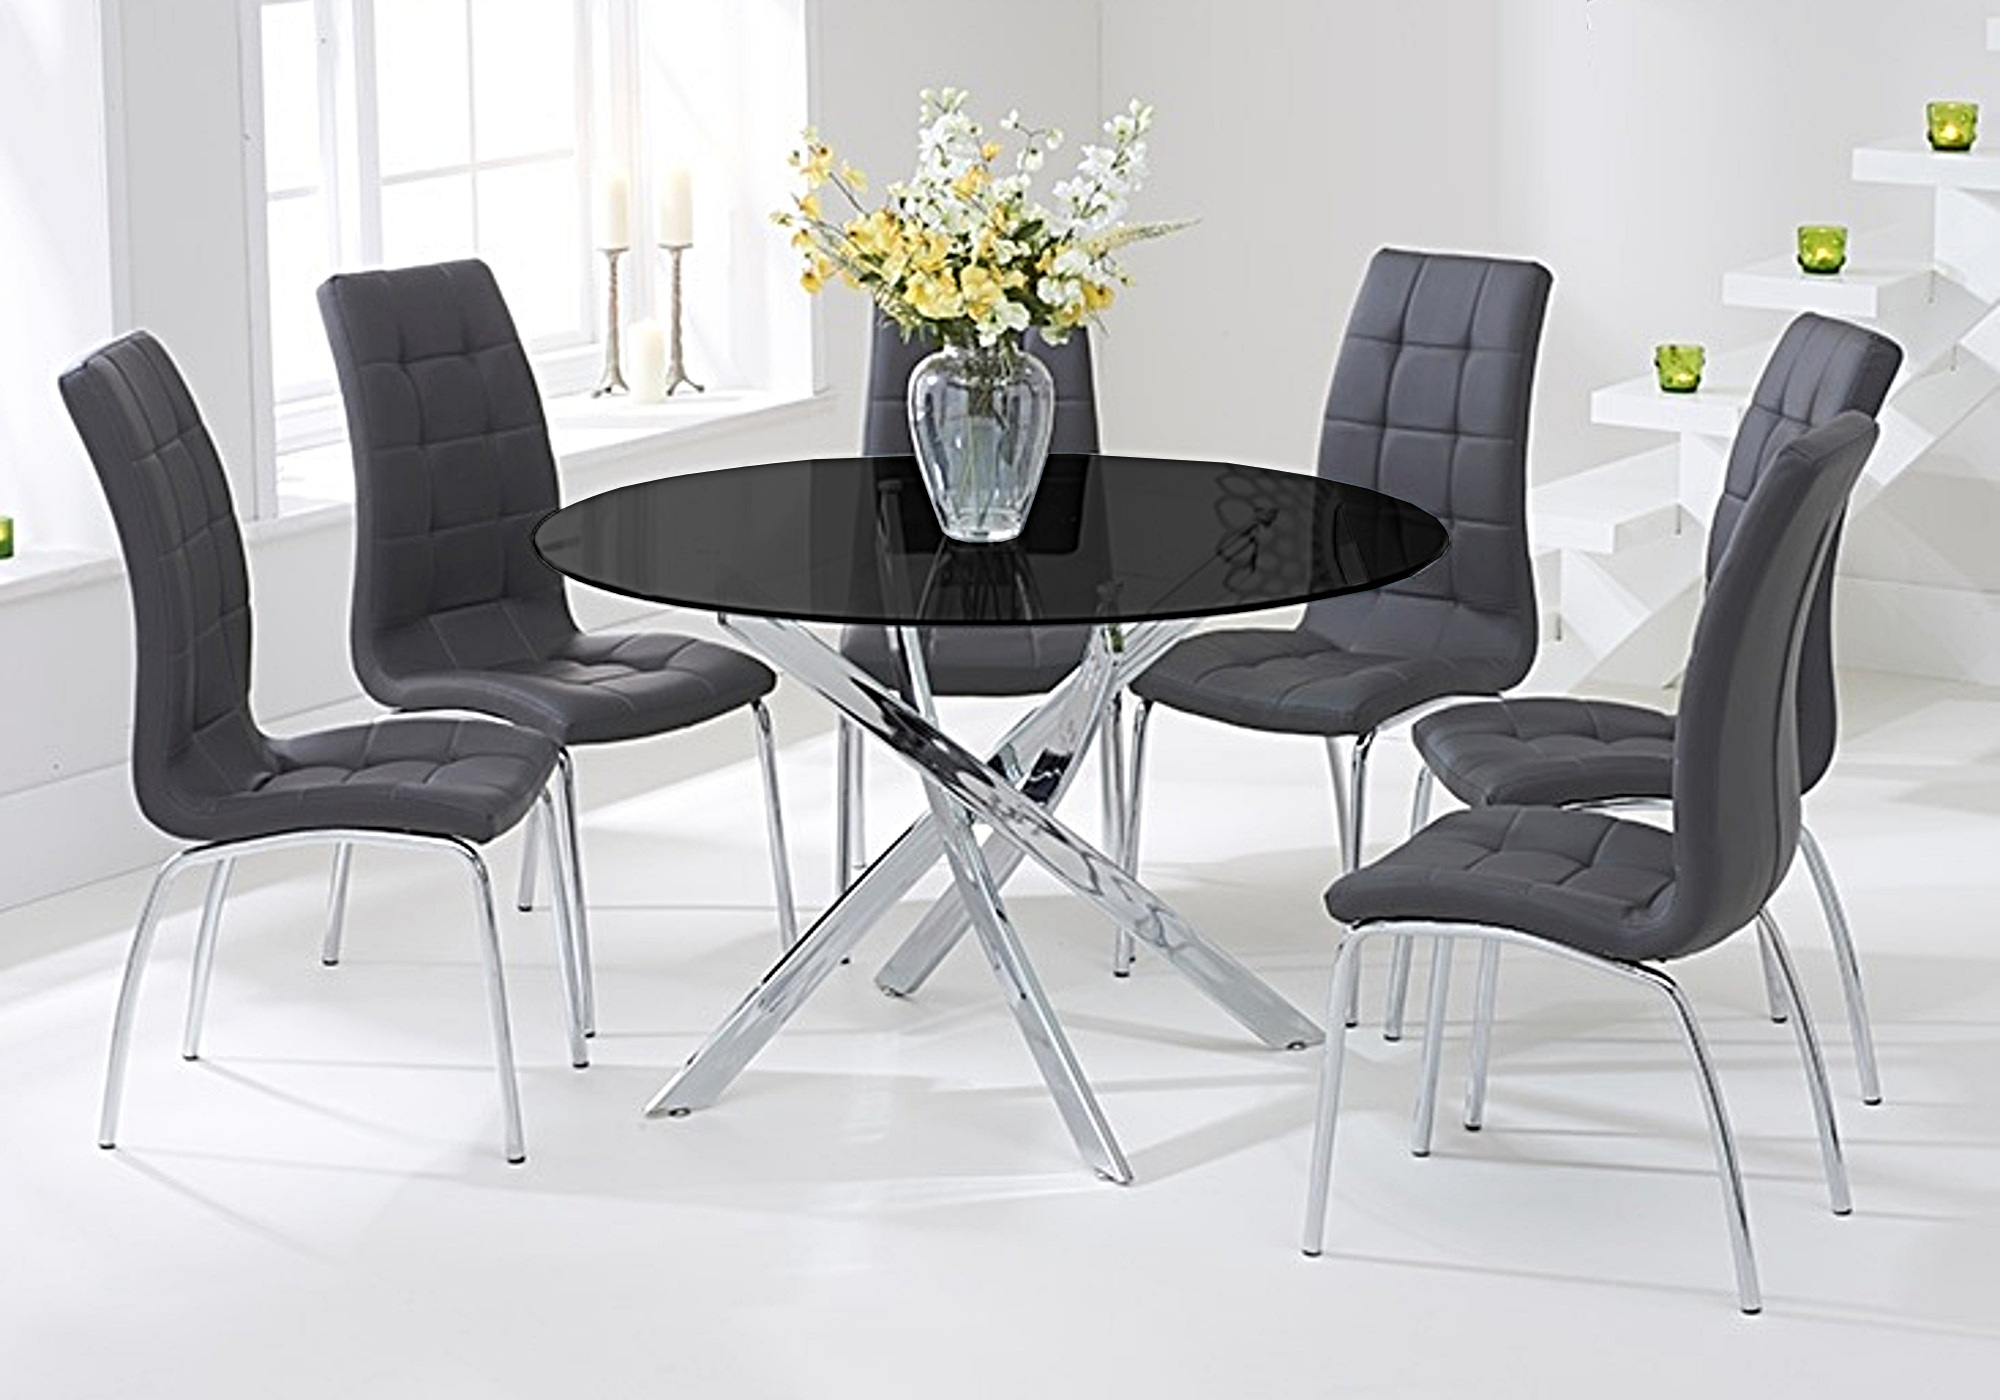 Table chromé noir 6 chaises gris DESIGN